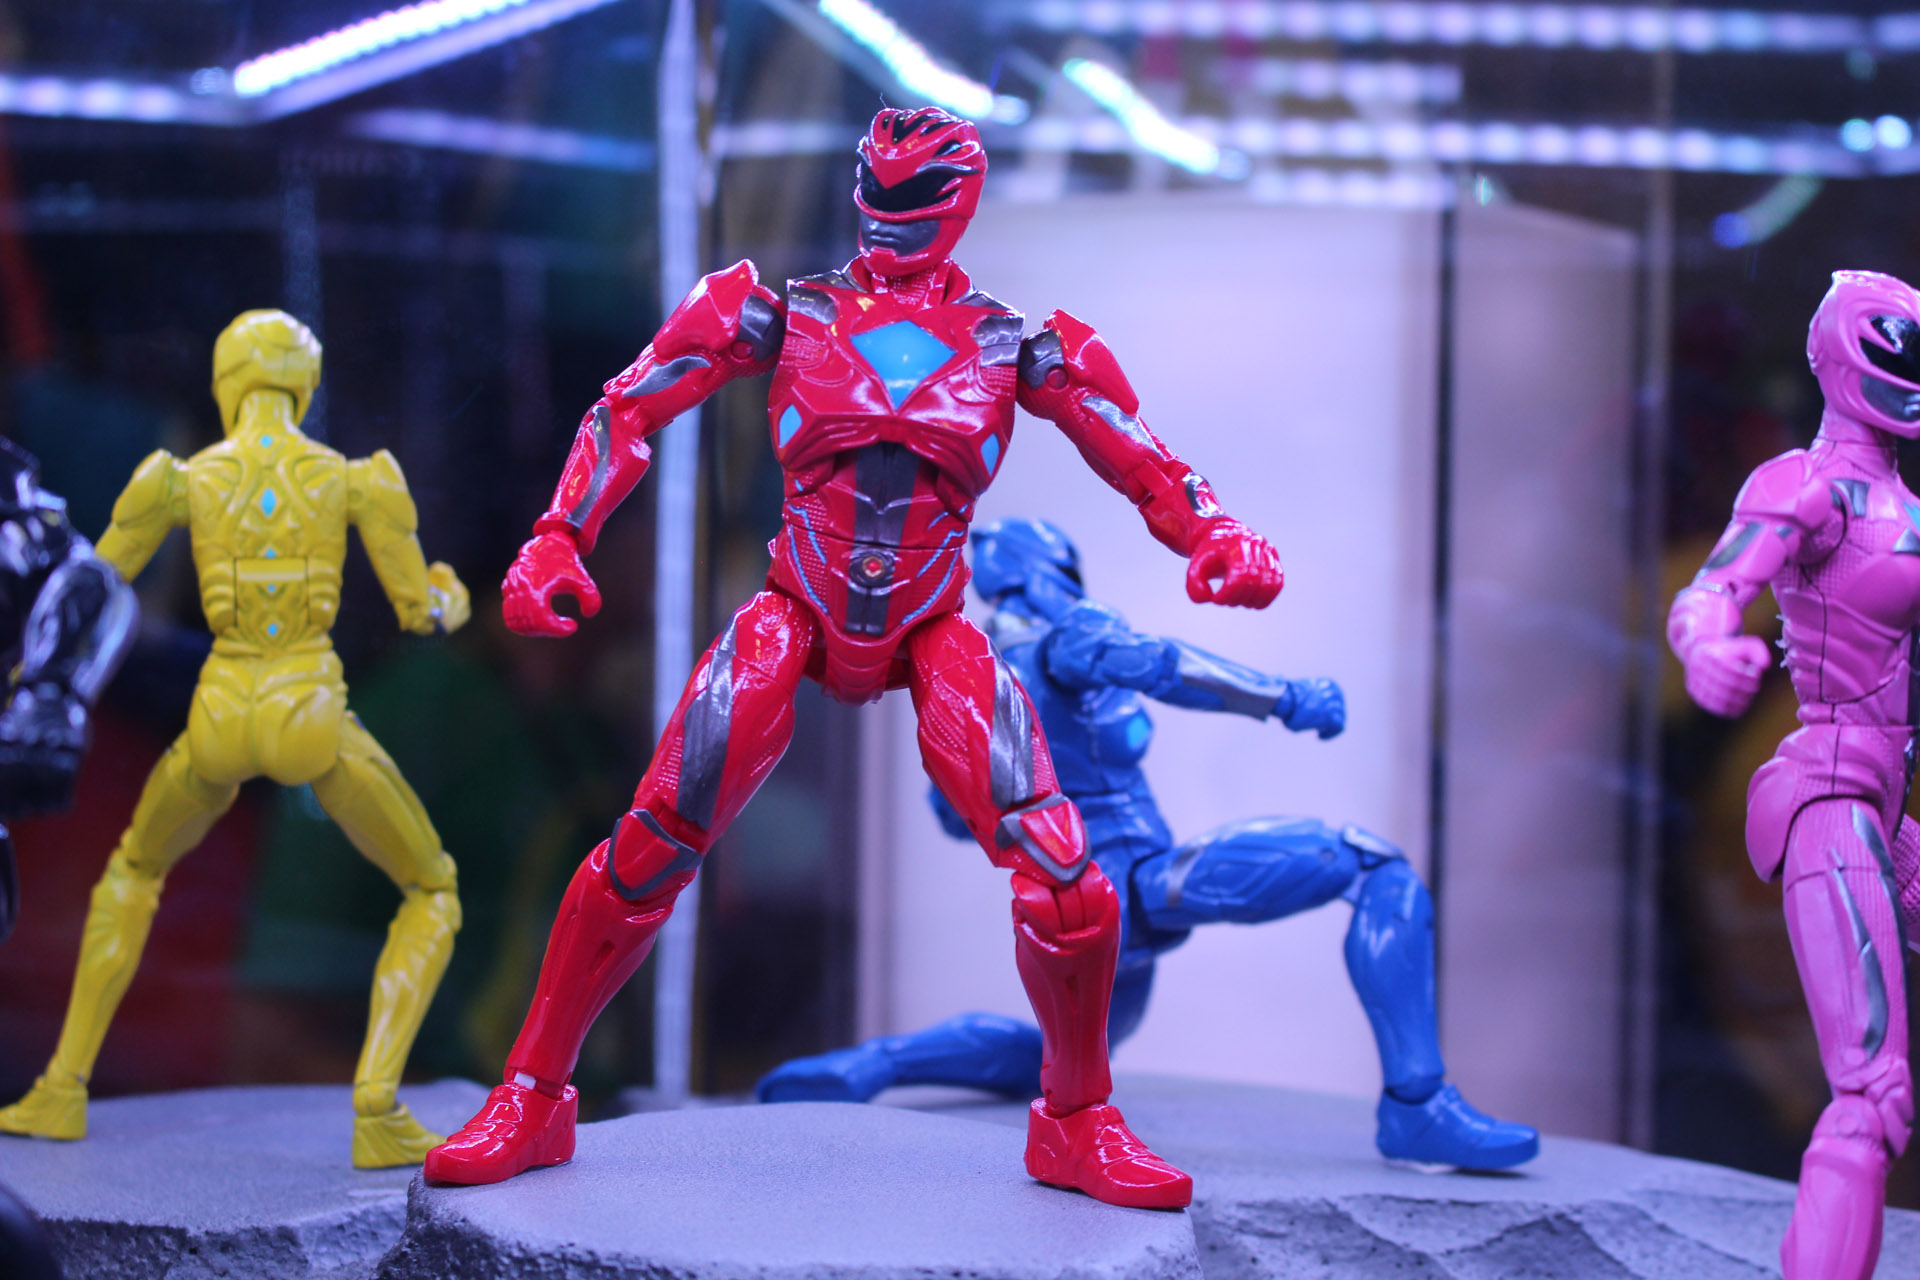 Best Power Ranger Toys And Action Figures : Power rangers movie new action figures revealed at comic con